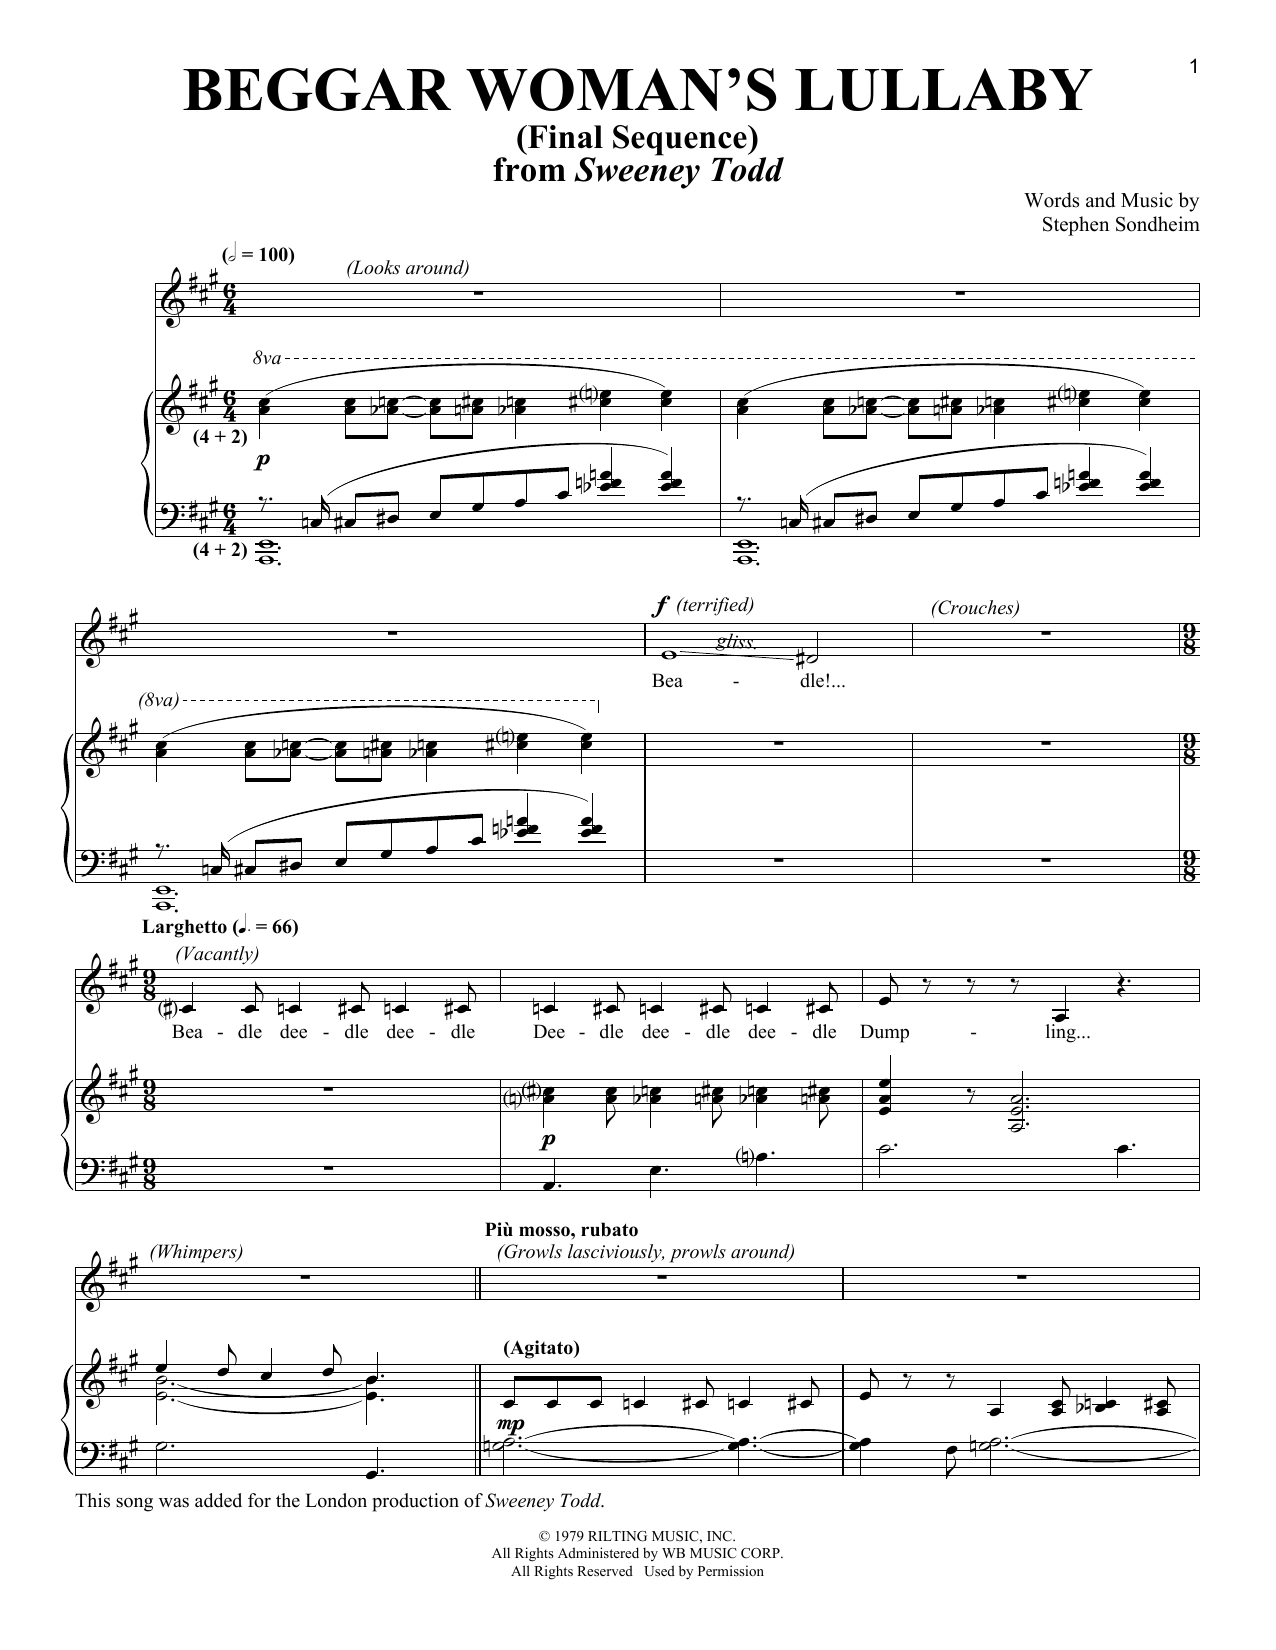 Stephen Sondheim Beggar Woman's Lullaby (Final Sequence) sheet music notes and chords. Download Printable PDF.